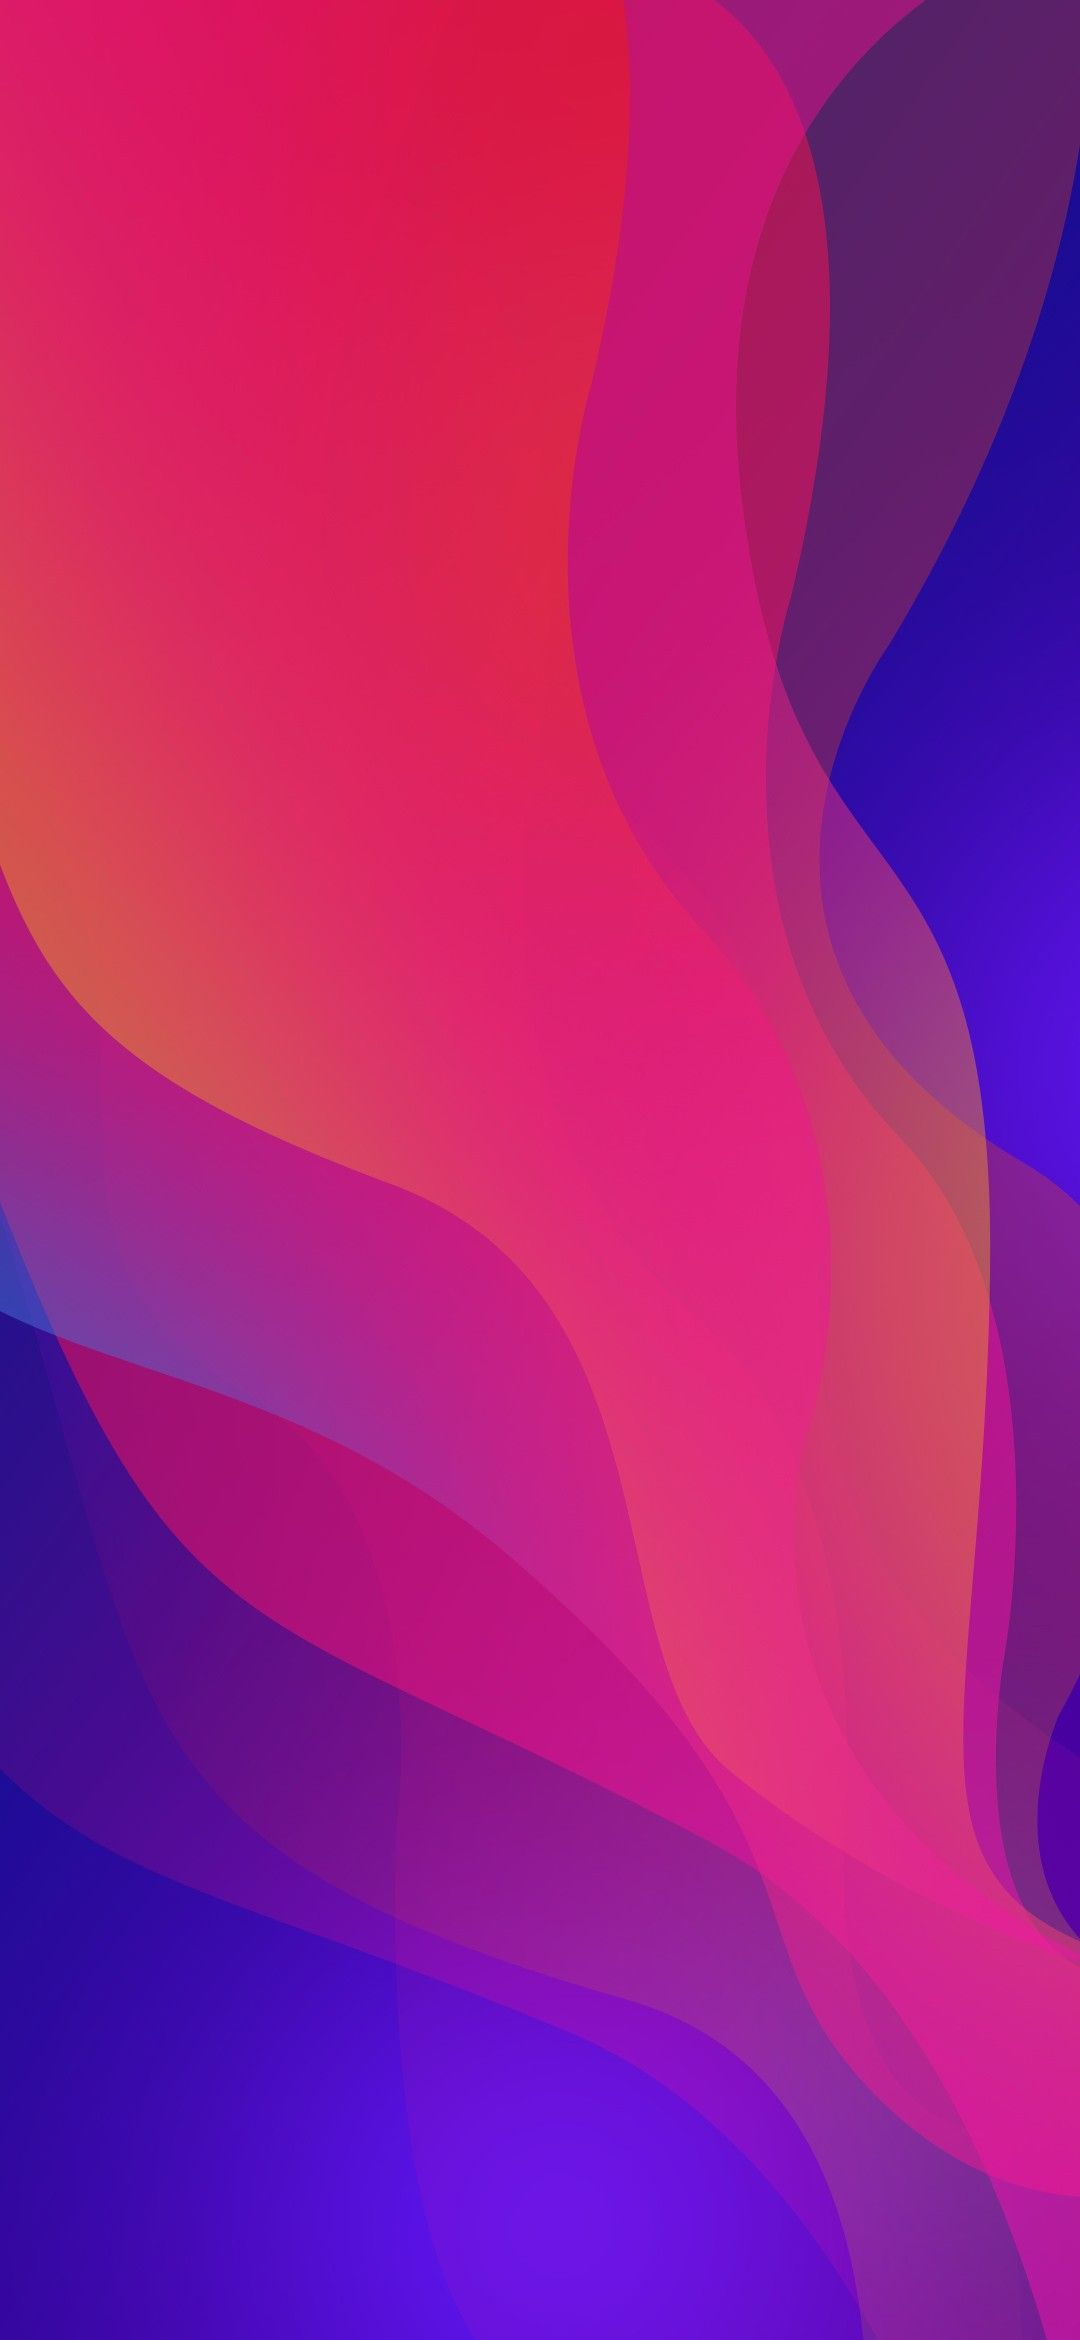 Oppo Wallpaper Posted By Ethan Sellers